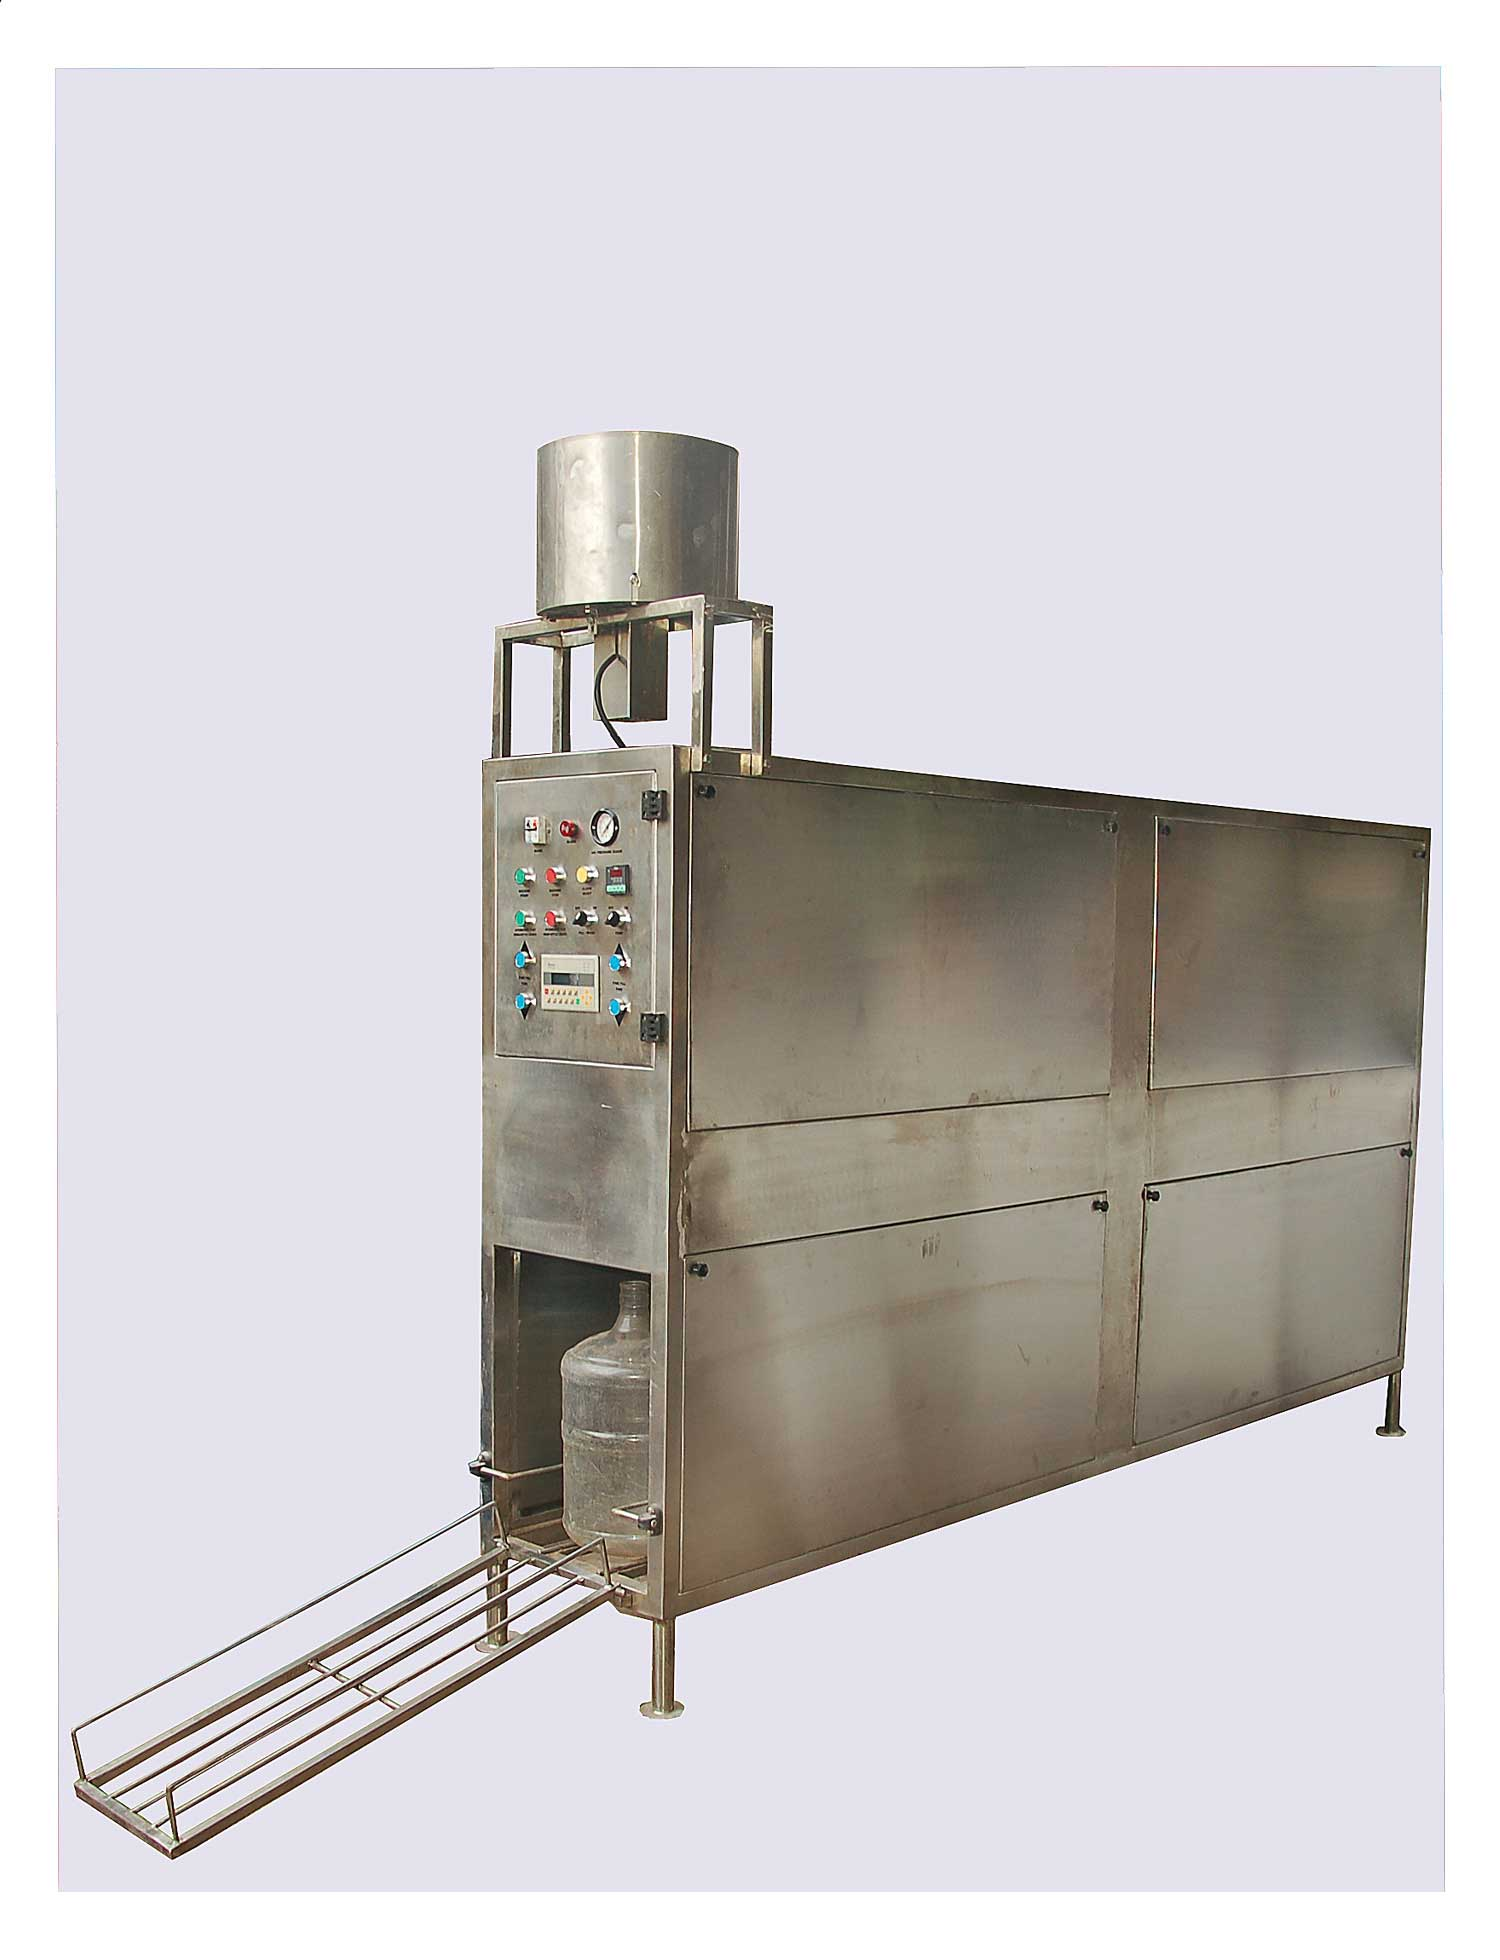 Automatic 20 Liter Jar's Rinsing, Filling And Capping Machine 100-120 JH Manufacturers & Exporters from India